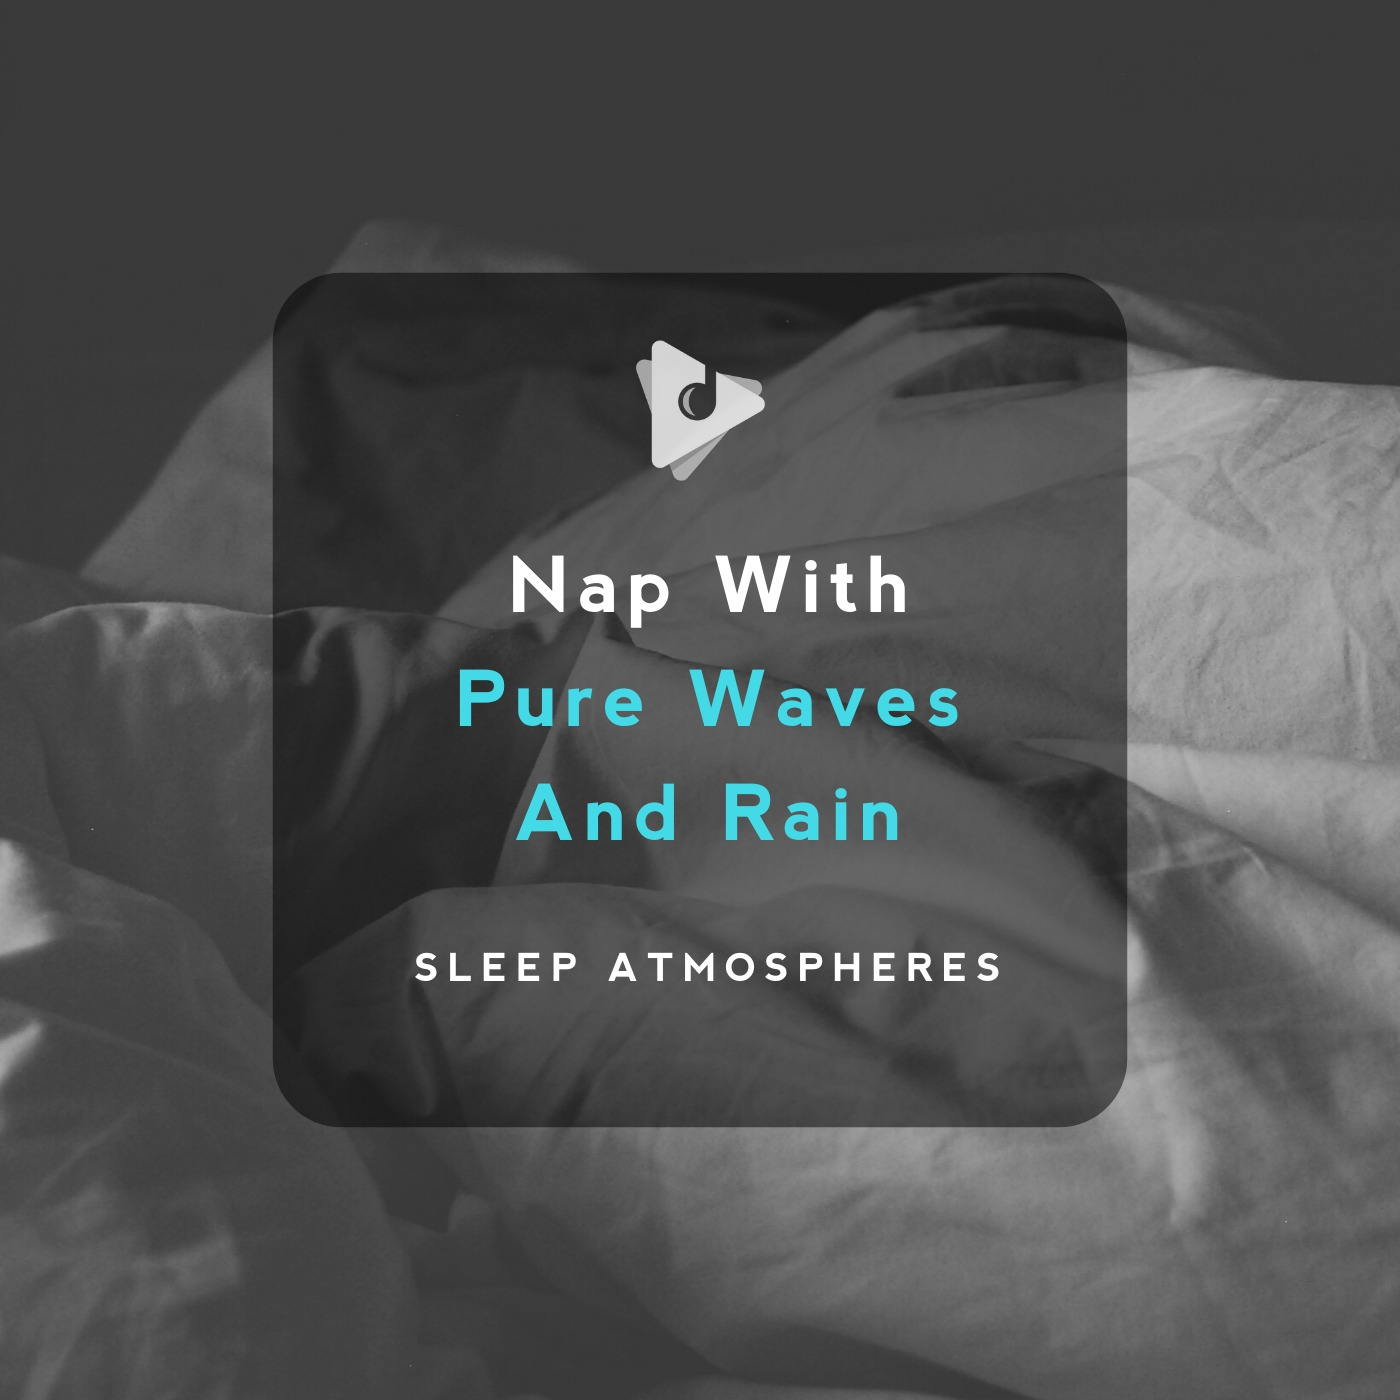 Nap With Pure Waves And Rain